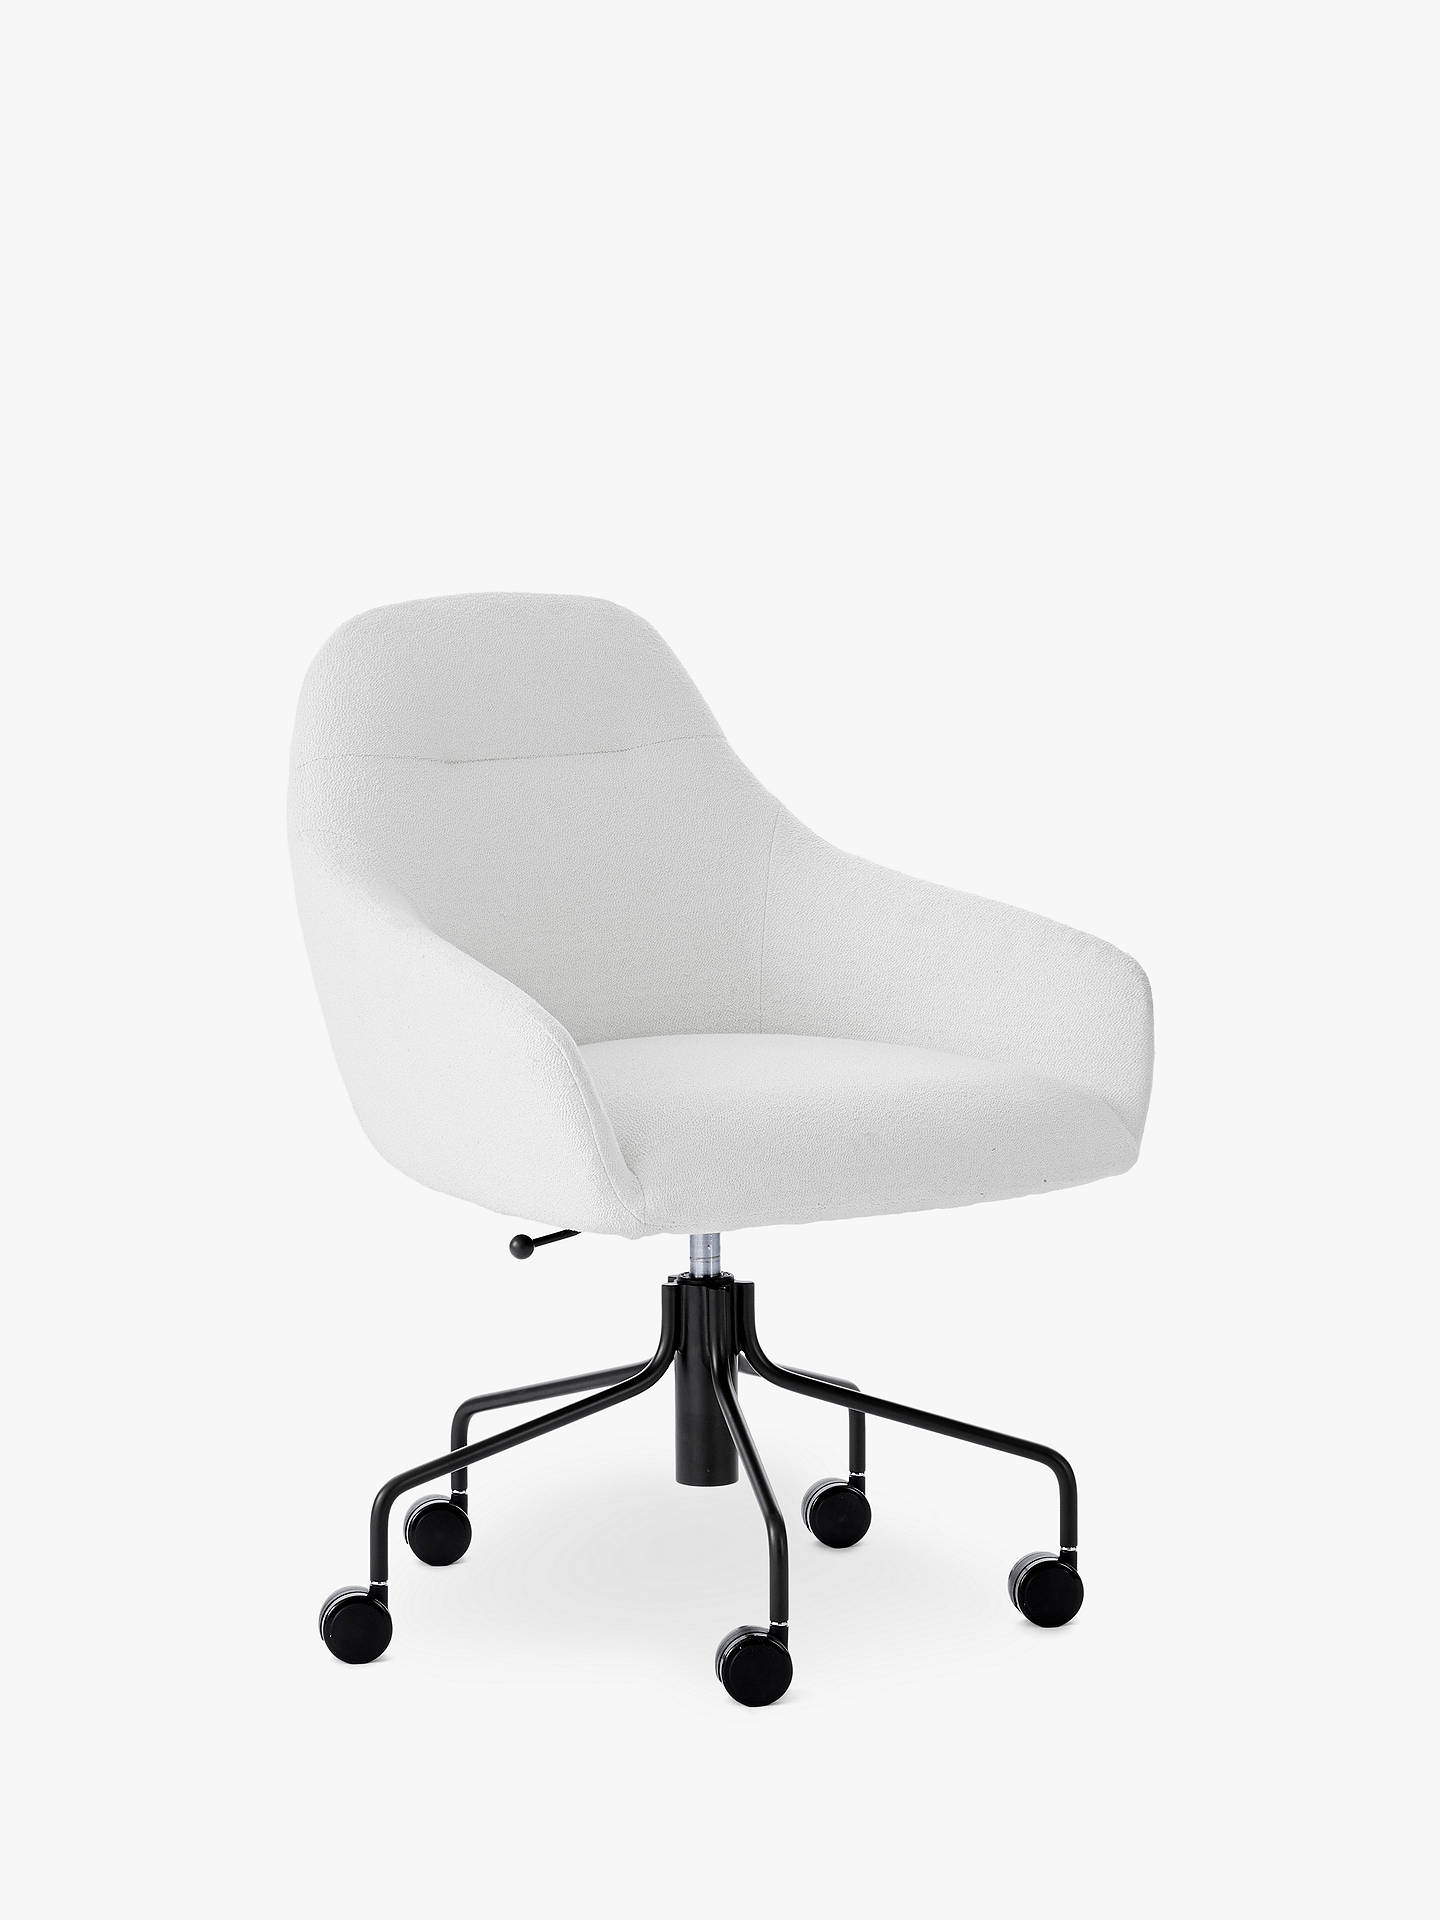 stunning west elm office chair | west elm Valentina Office Chair, White at John Lewis ...